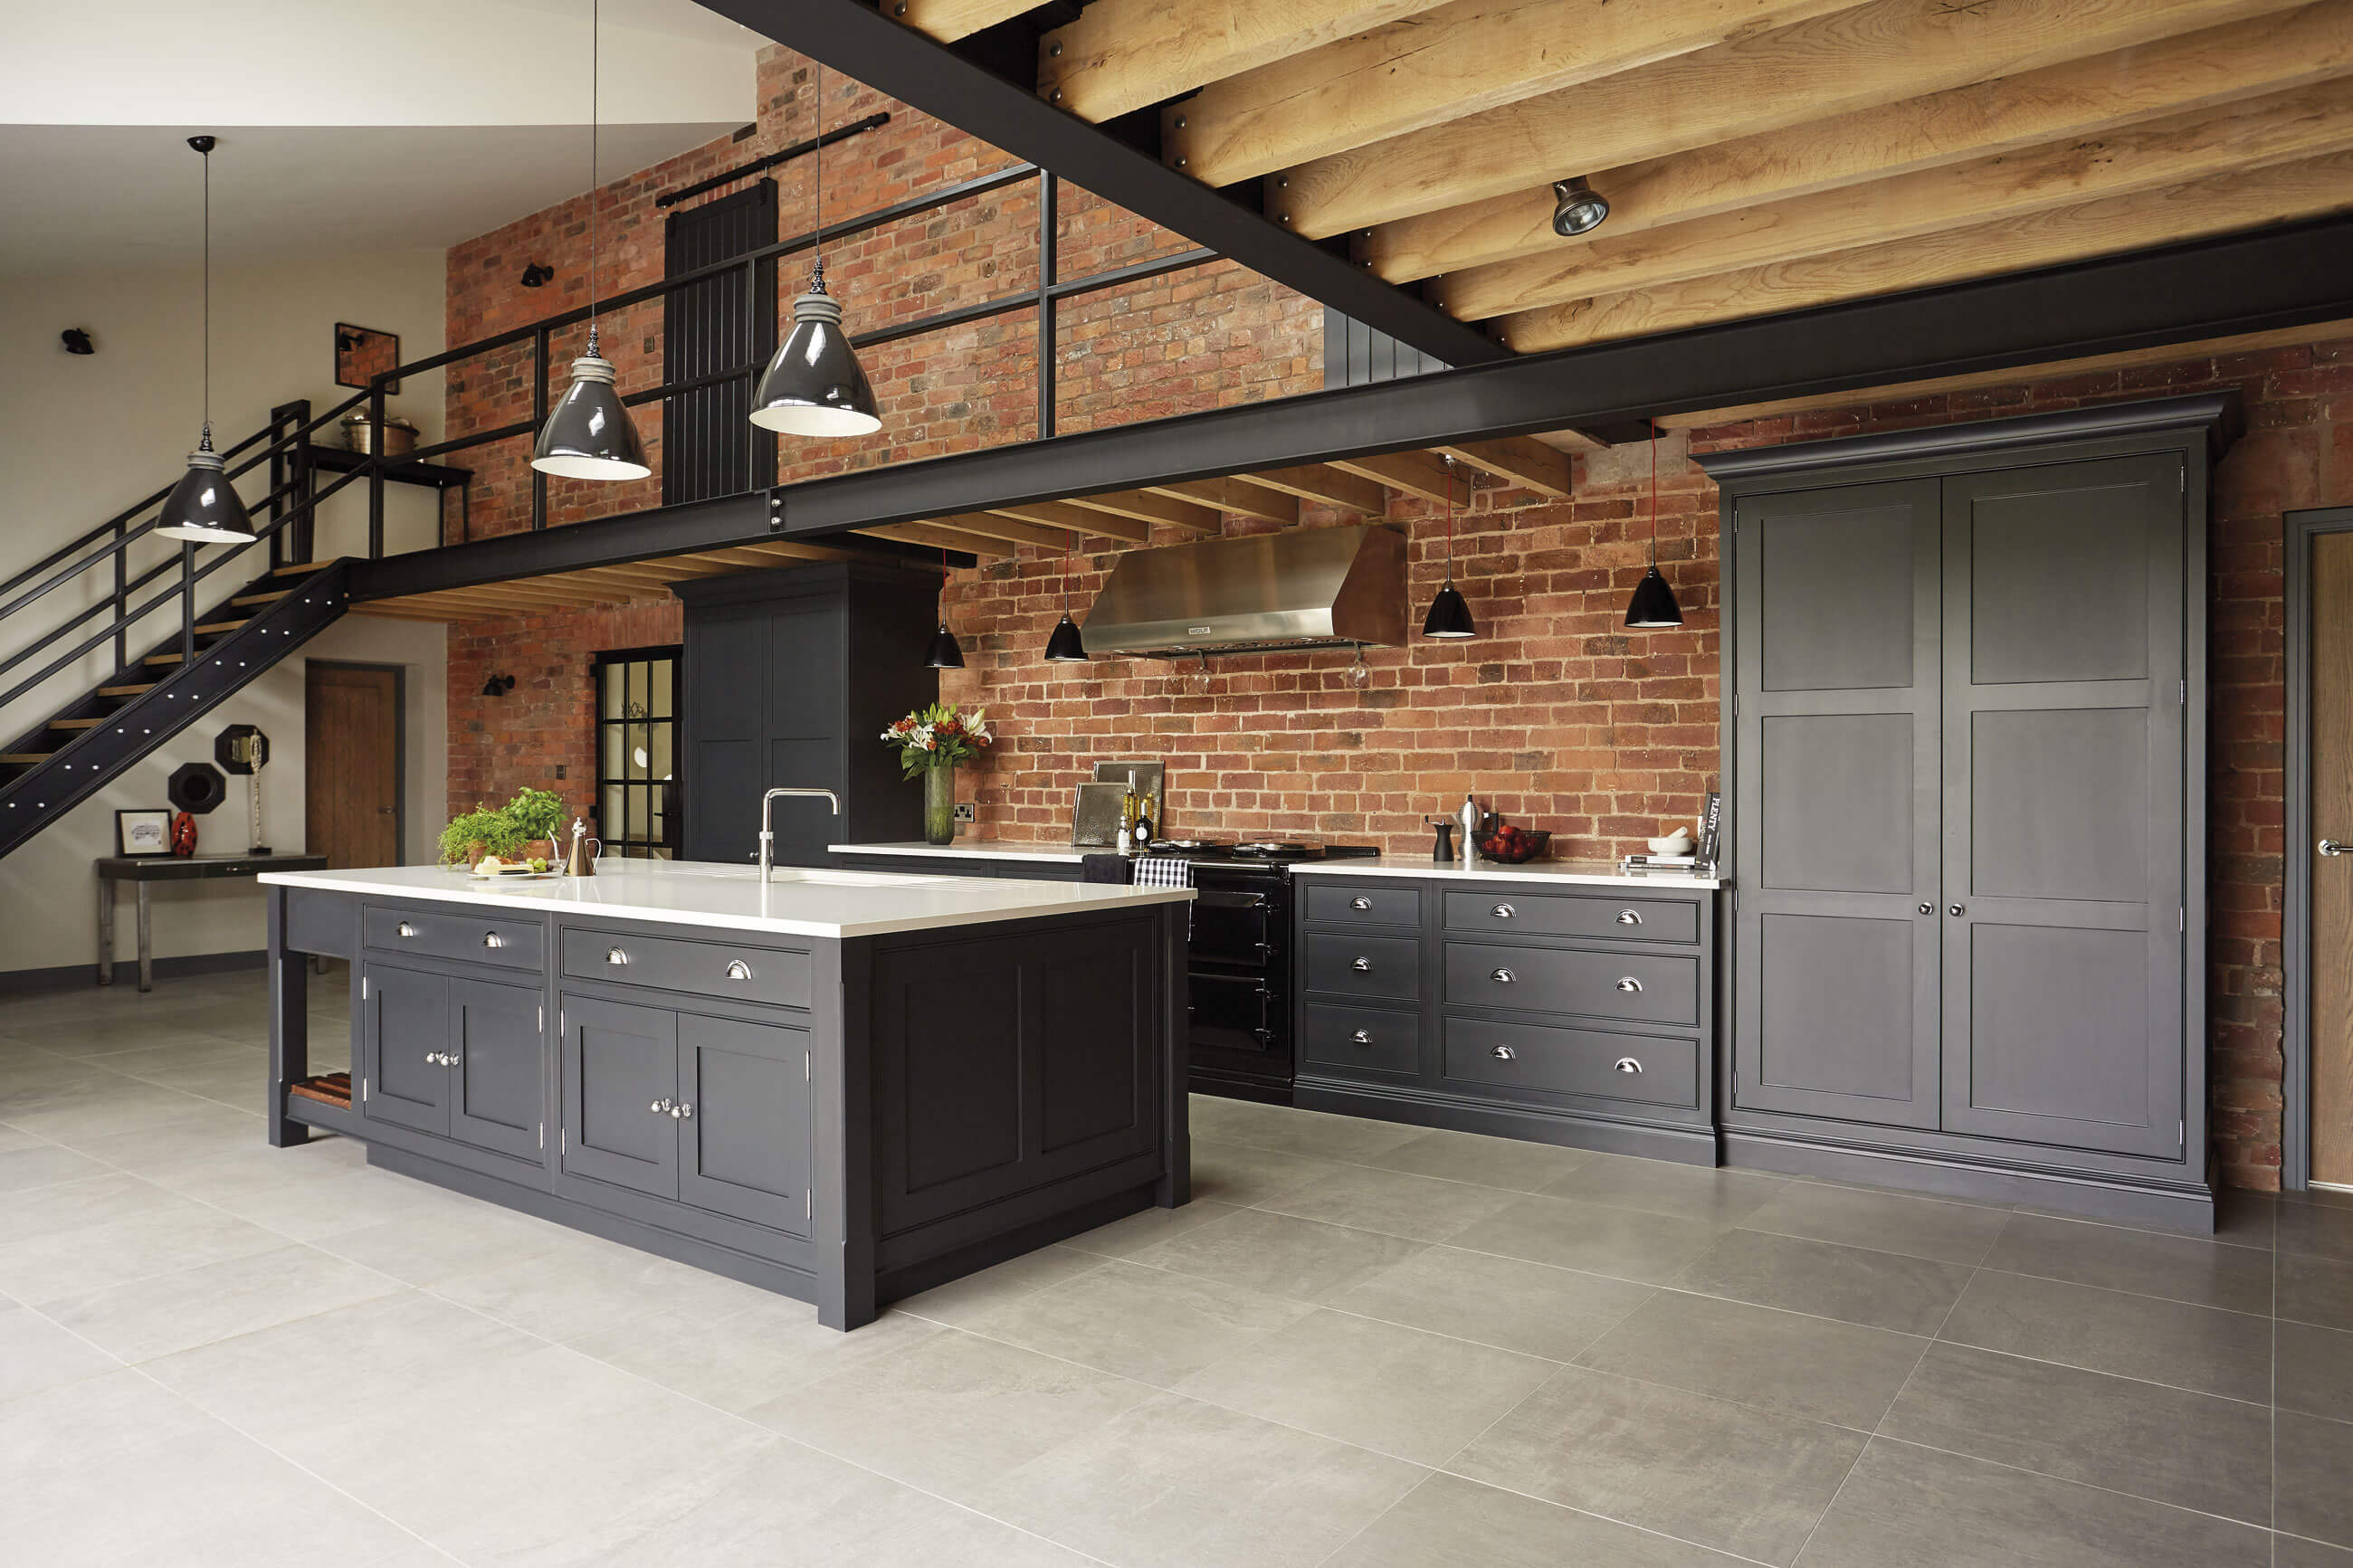 Industrial style kitchen tom howley for Industrial style kitchen